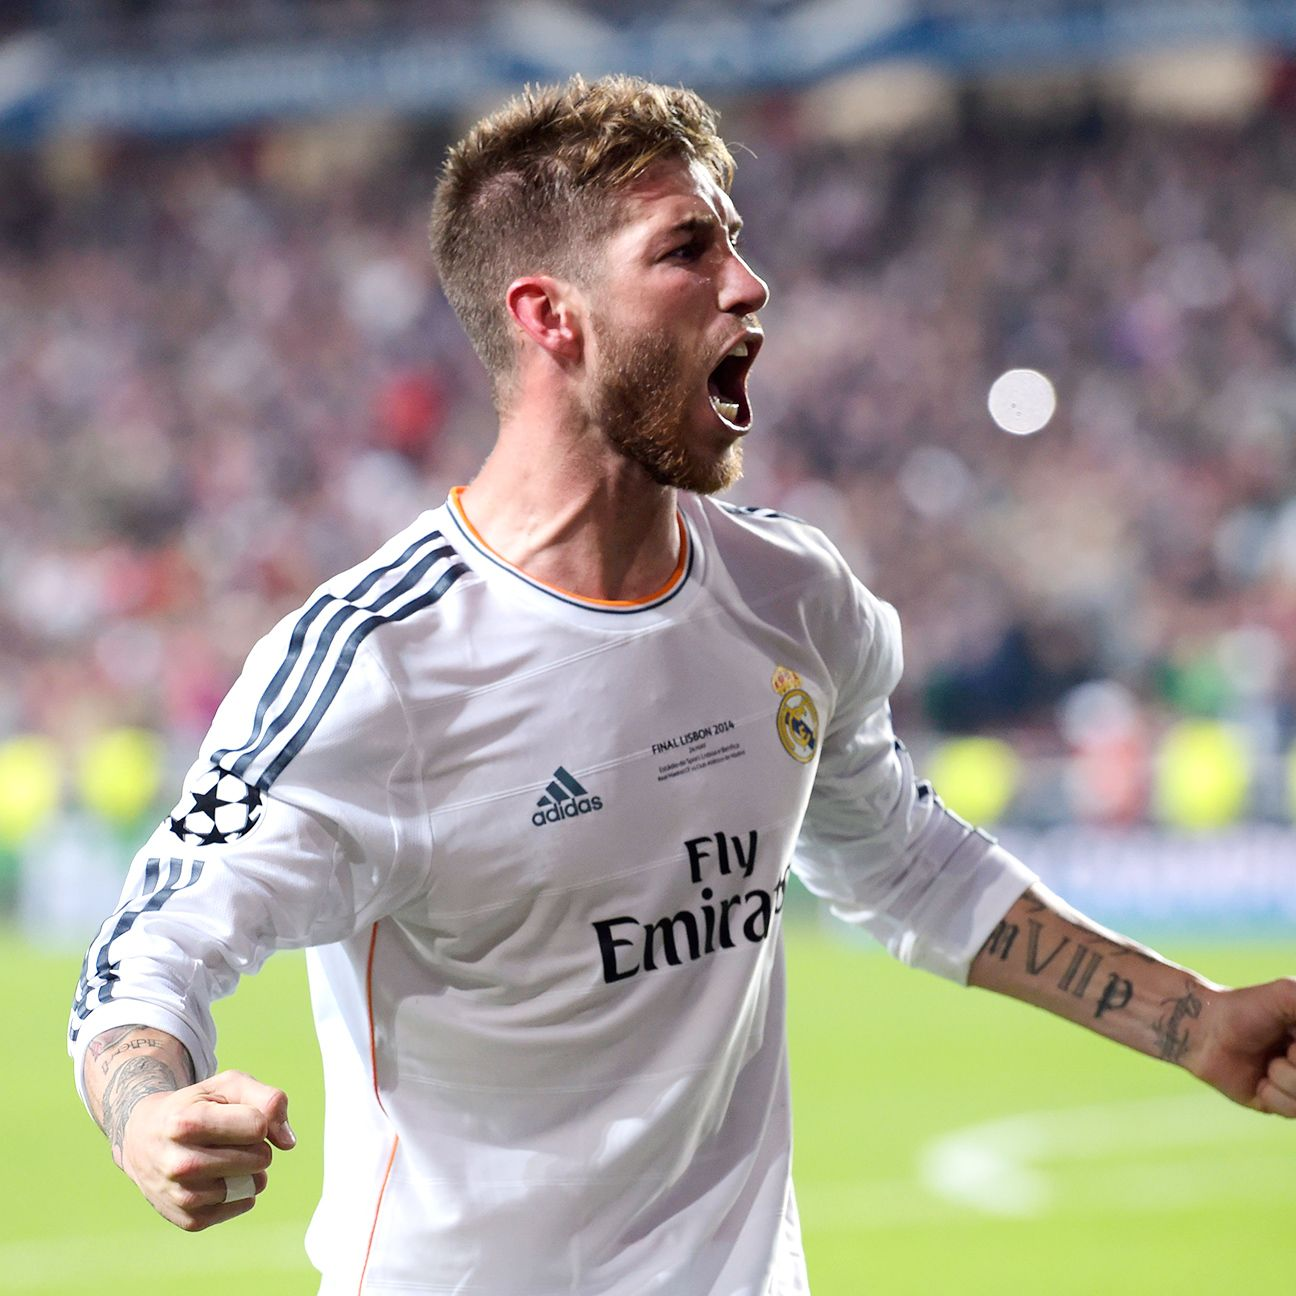 Sergio Ramos would be the first defender since 2006 to win the Ballon d'Or.